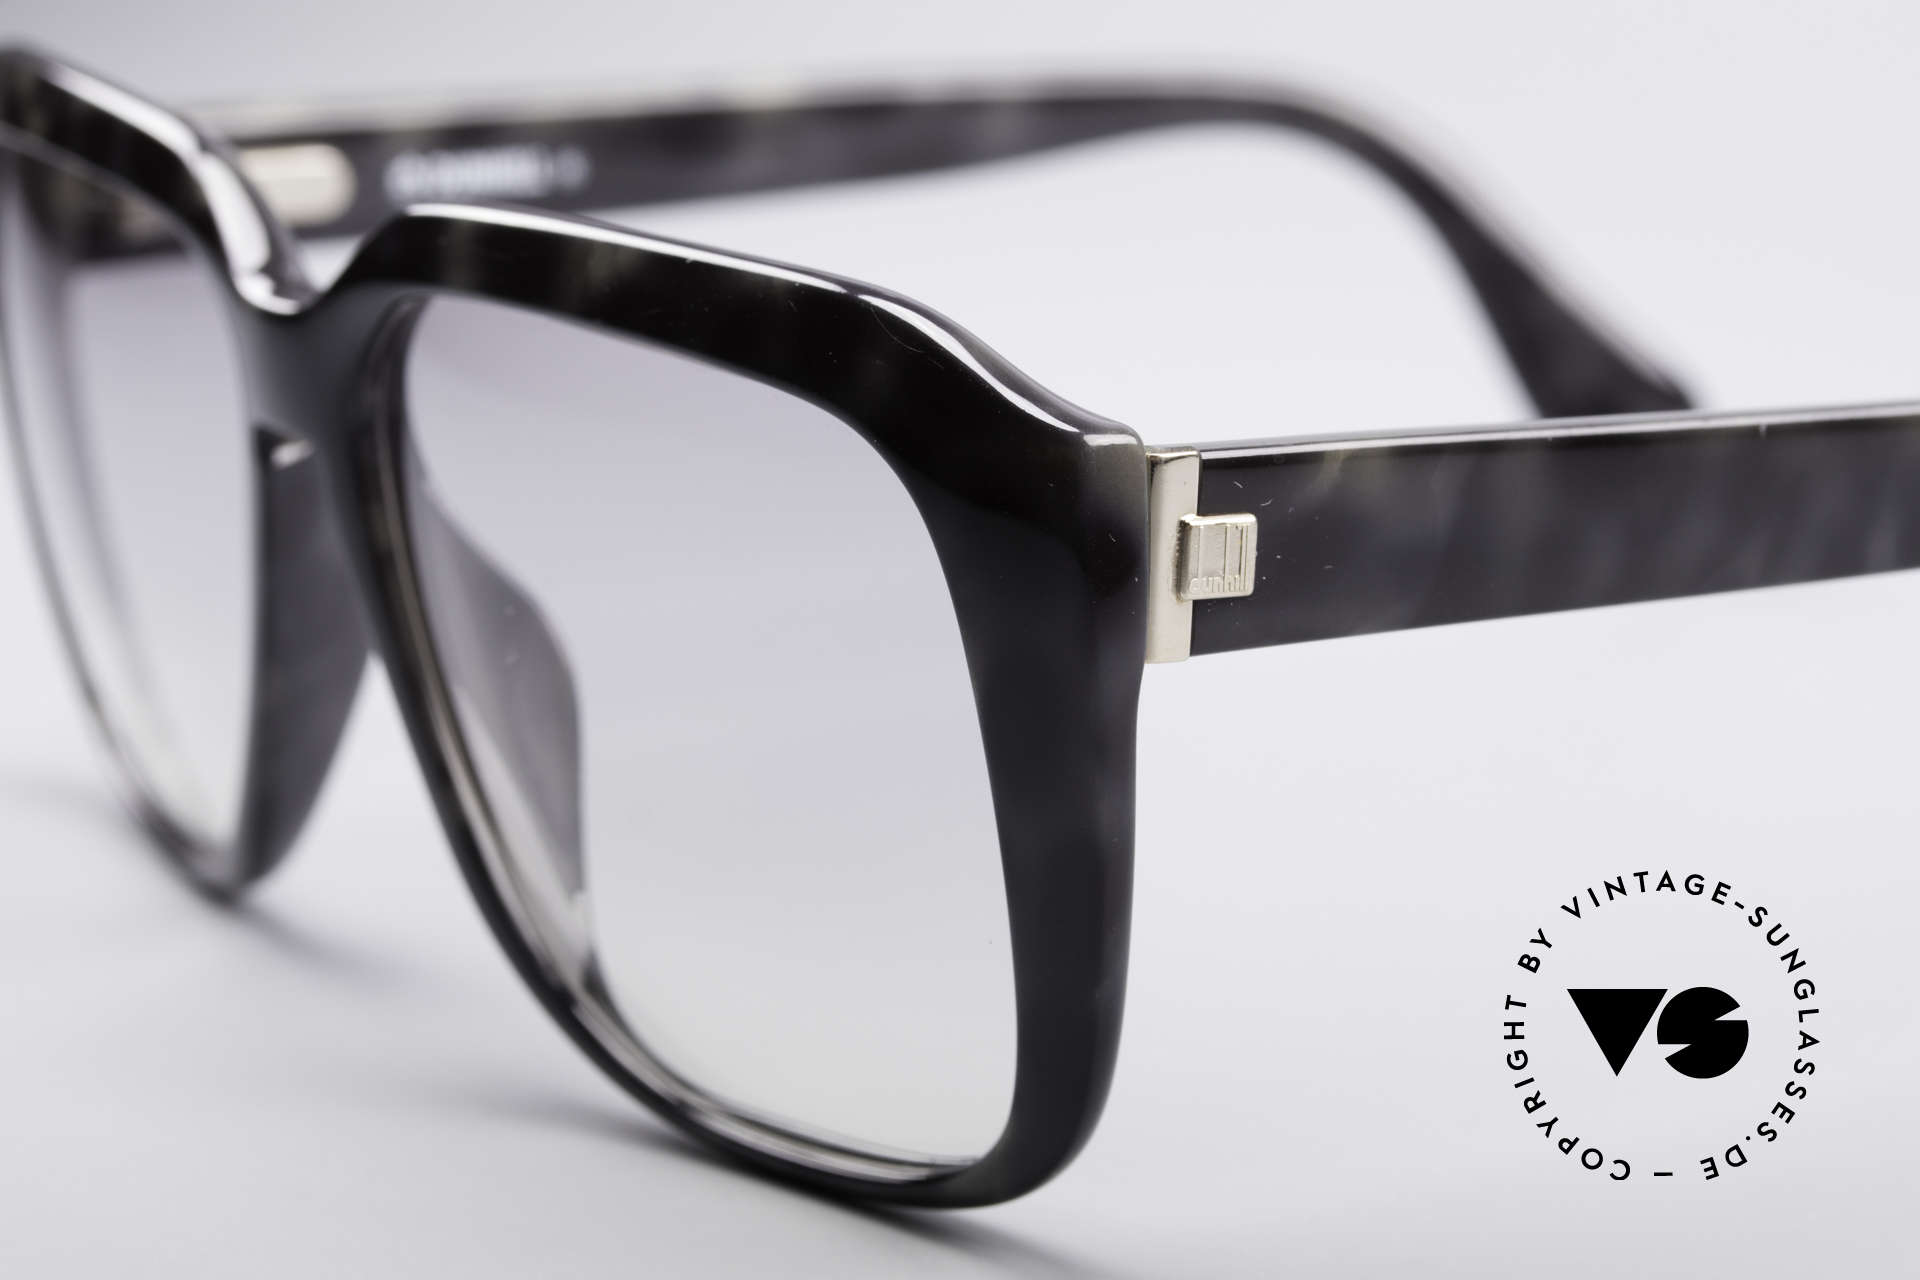 Dunhill 6045 80's Optyl Sunglasses, surpreme workmanship, MONOLITHIC, built to last, Made for Men